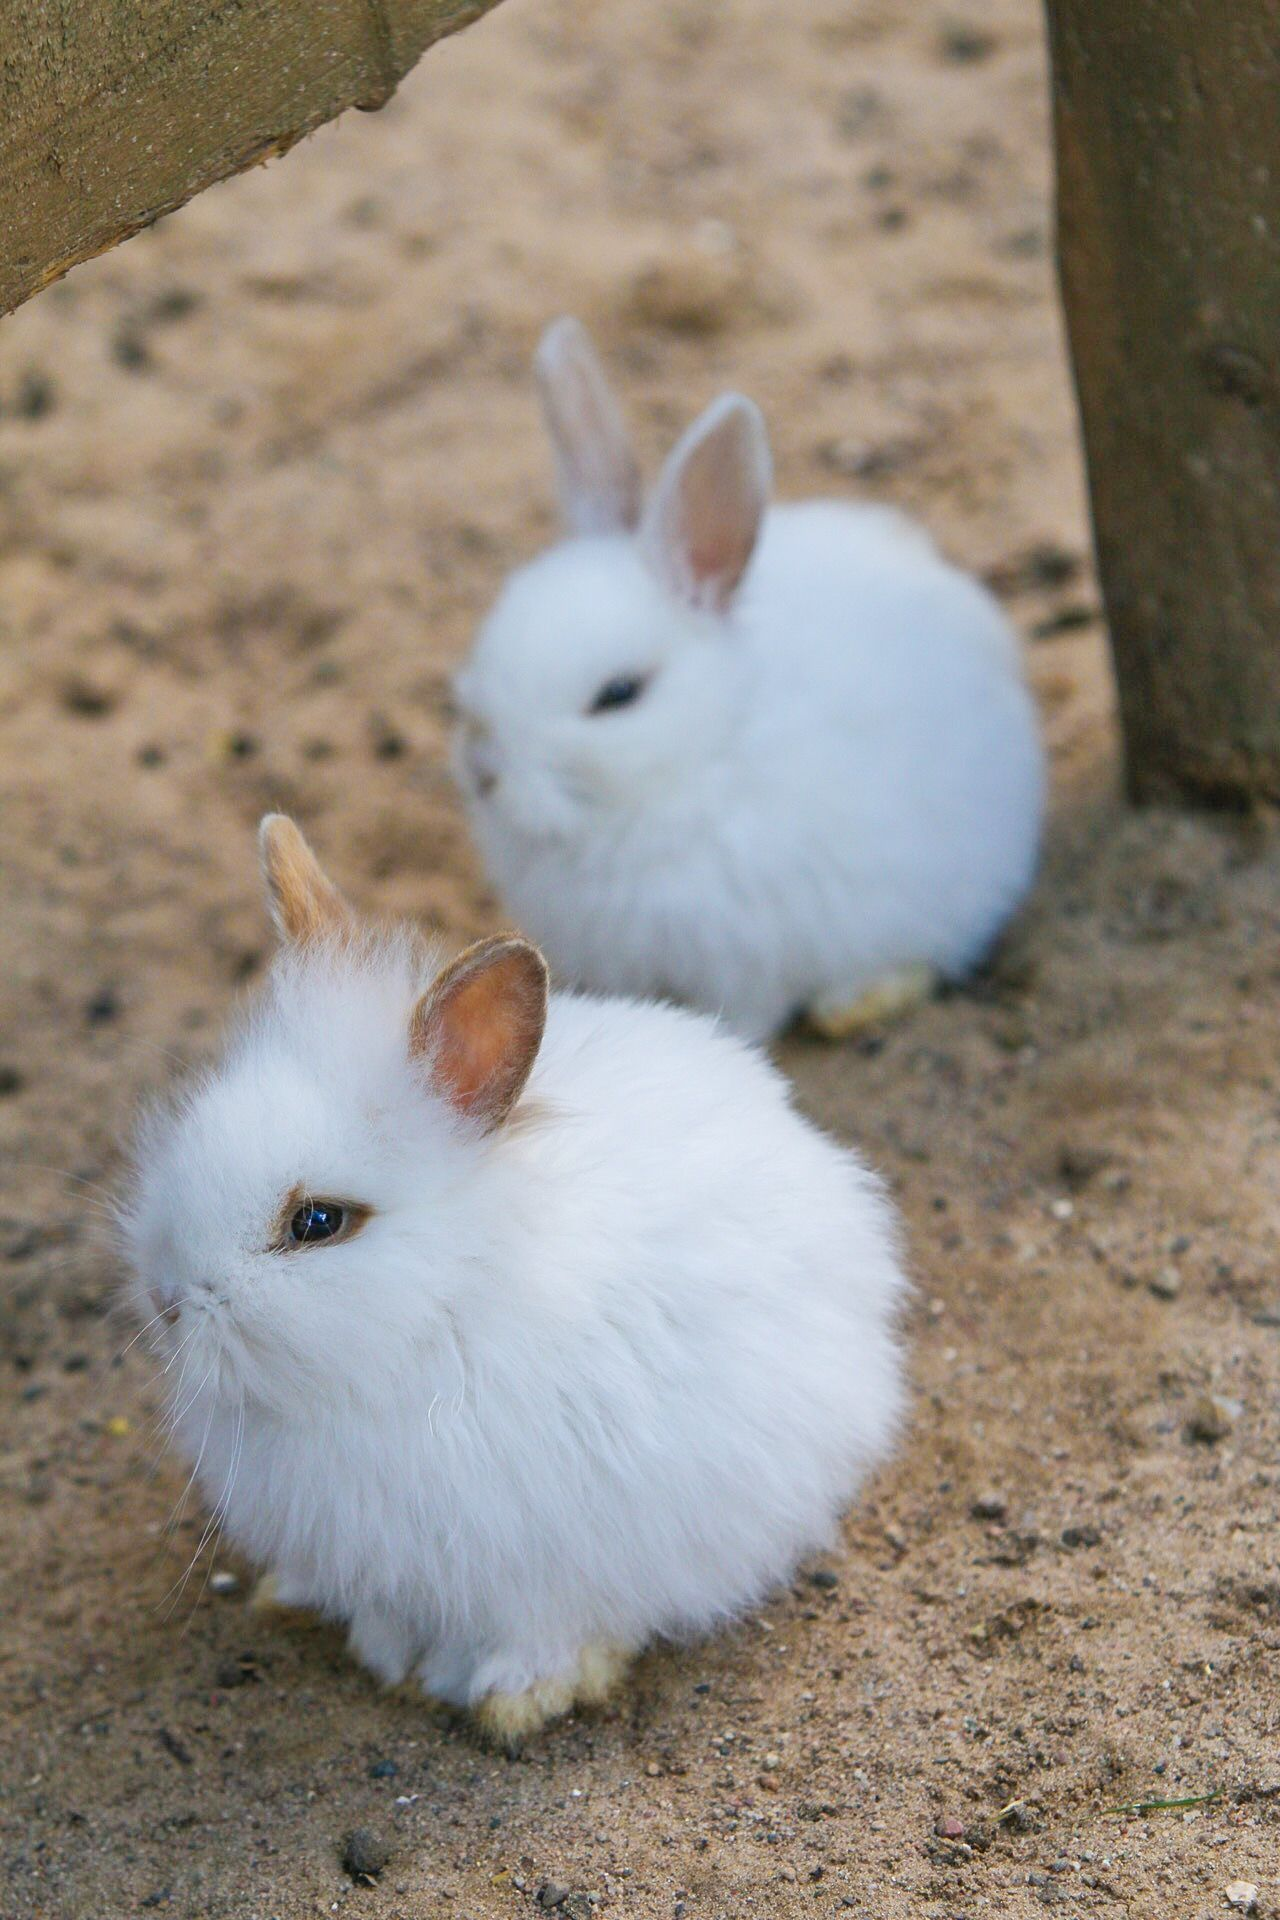 Rabbit Rabbits Rabbits 🐇 Animal Love Animal_collection Animal Photography Cute Pets Cute Animals